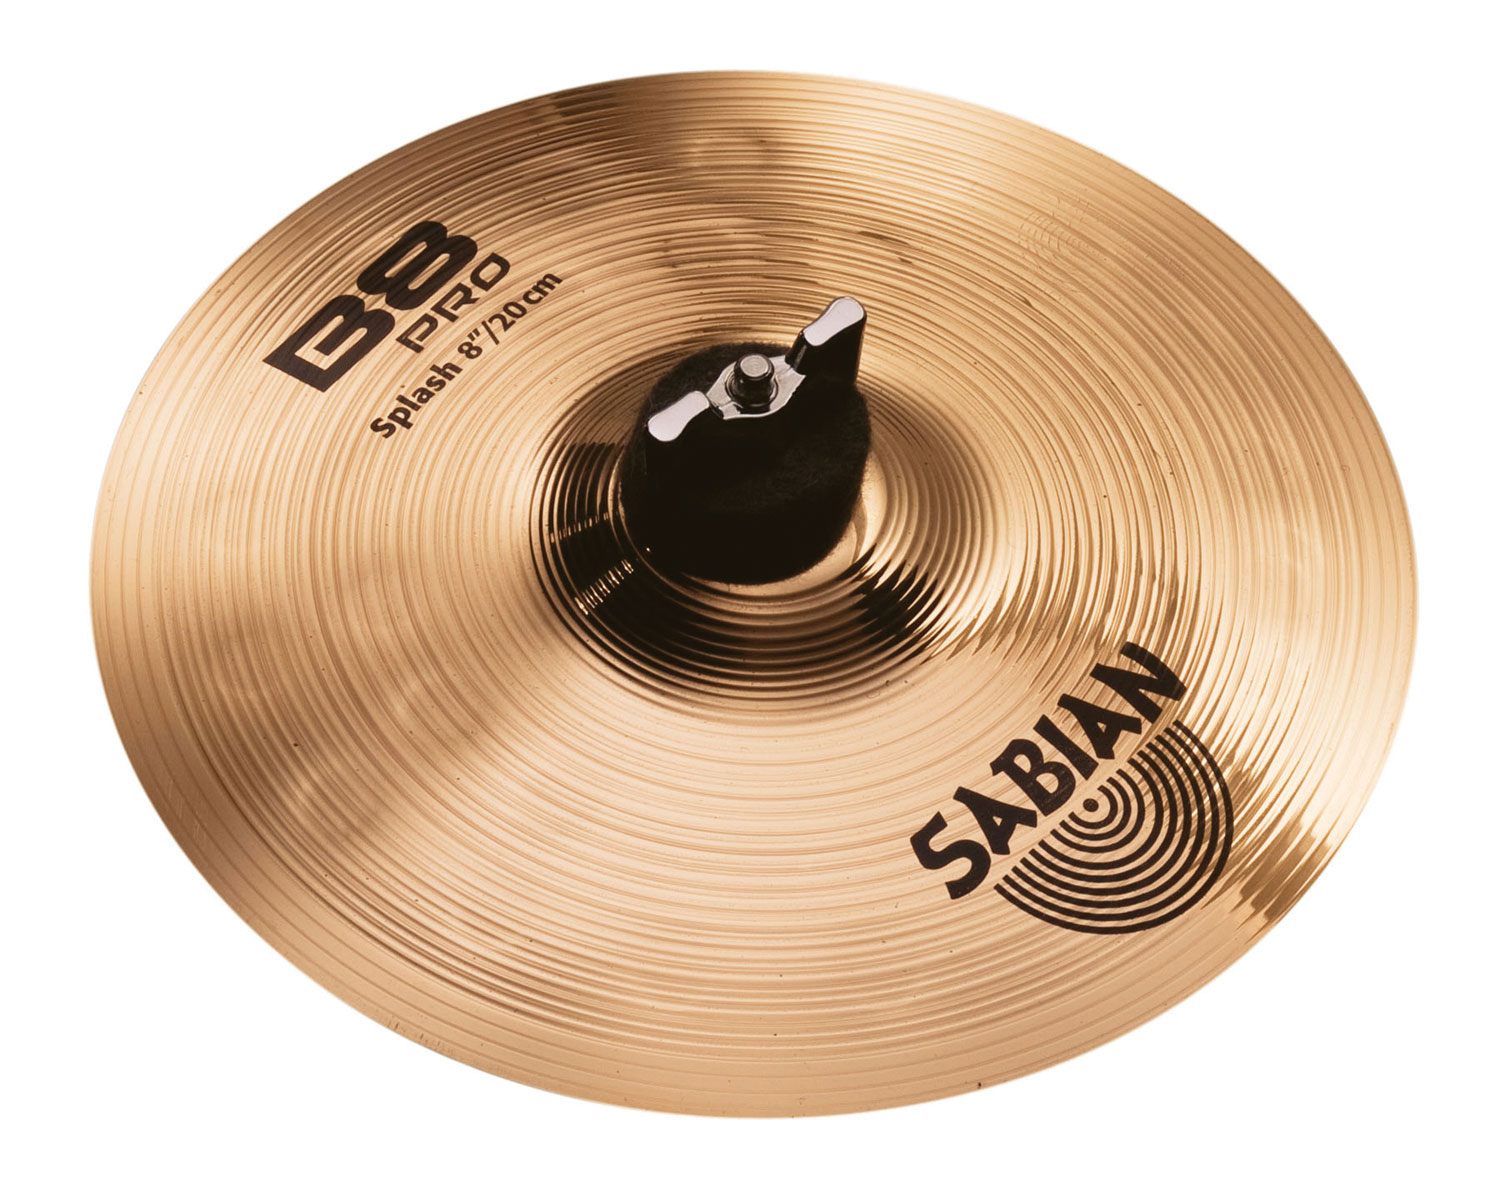 sabian 8 b8 pro splash cymbal with brilliant finish 30805b. Black Bedroom Furniture Sets. Home Design Ideas